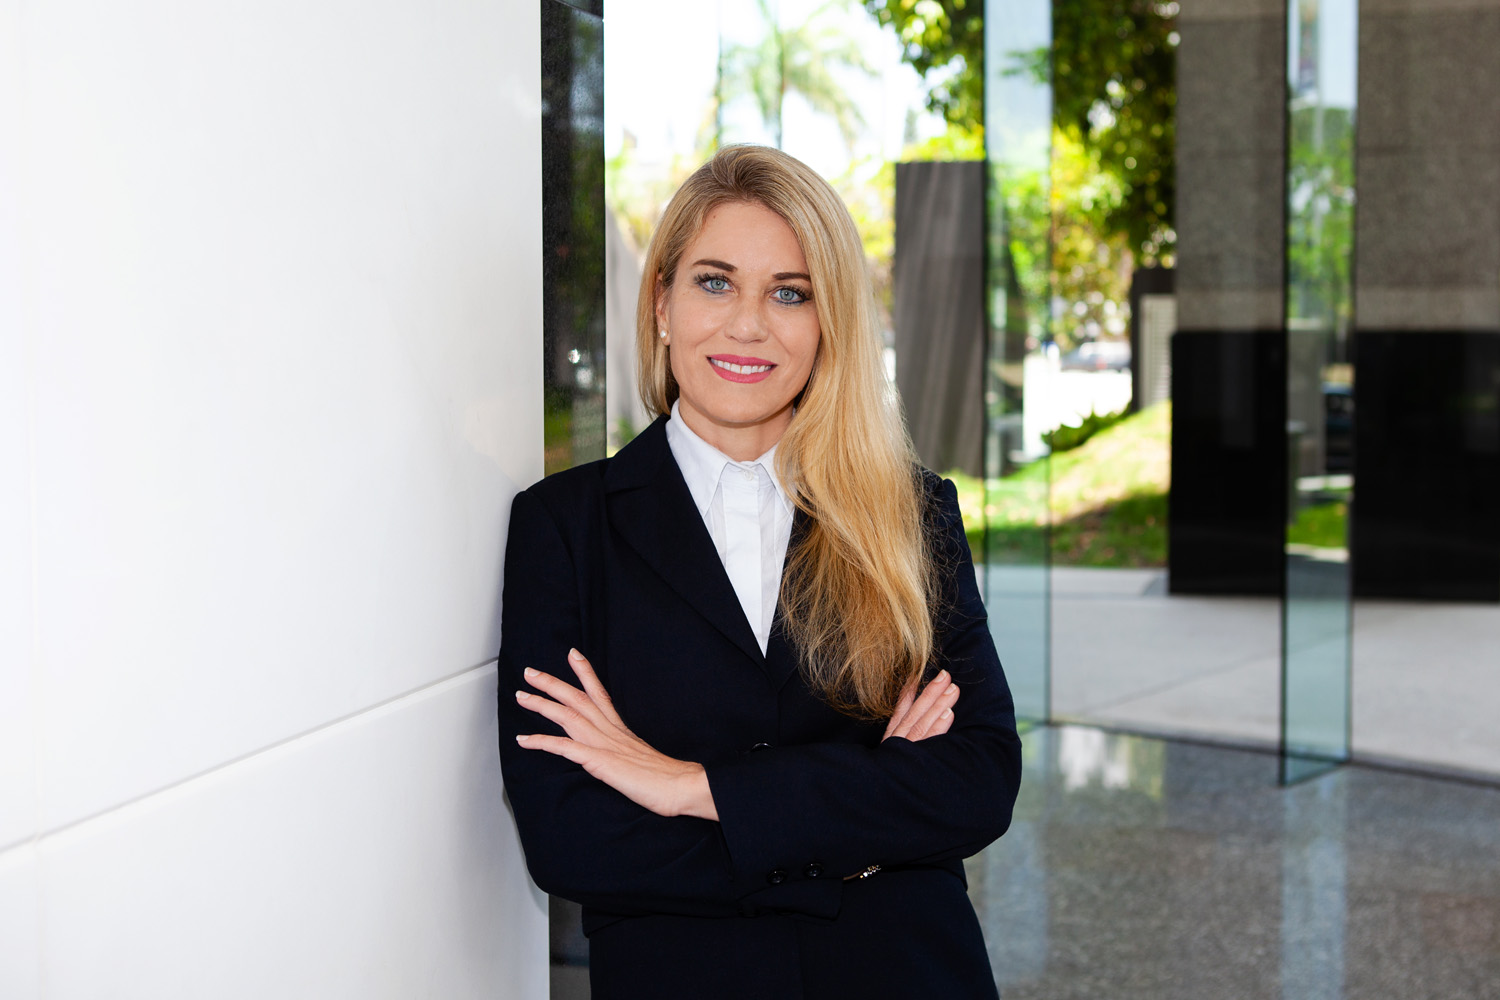 kate law clerk; lawyer in a suit; 50 cavill avenue surfers paradise; @lananoir; lana noir; lana noir photographer; lana noir photography; lananoir; lawyer kathleen simpson; gold coast lawyer; dv lawyer; domestic violence lawyer